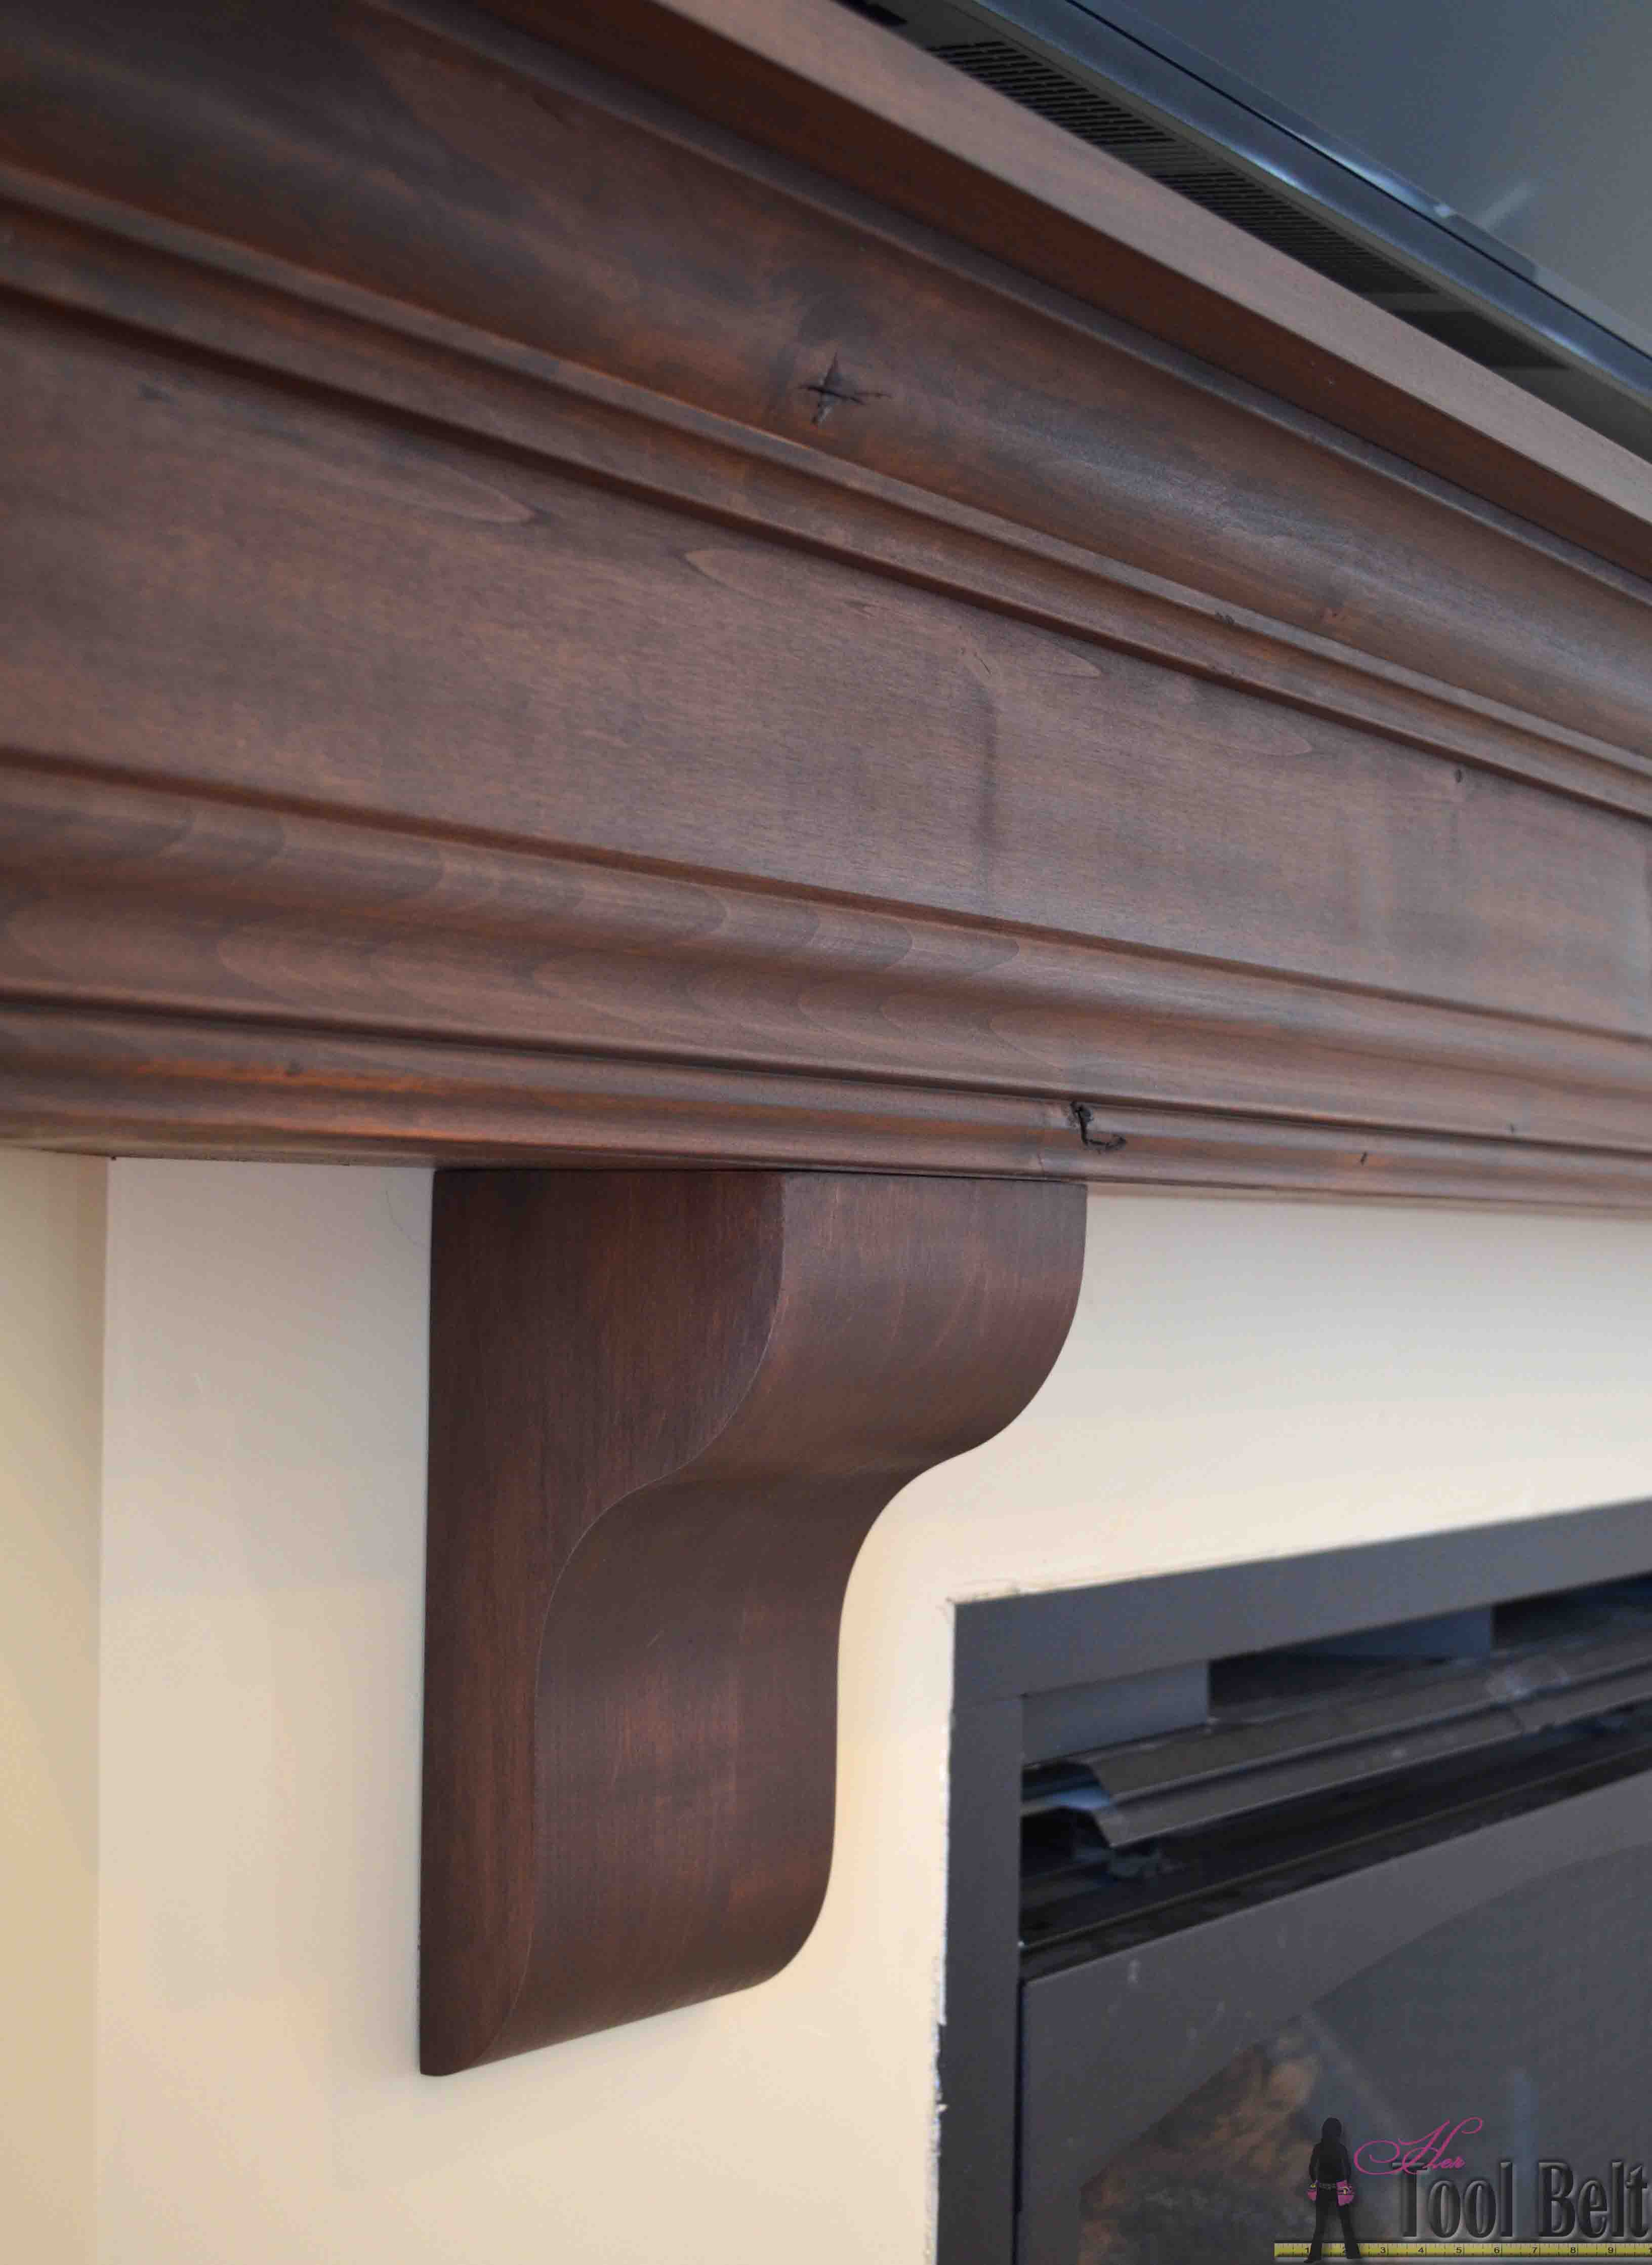 diy fireplace mantel shelf her tool belt